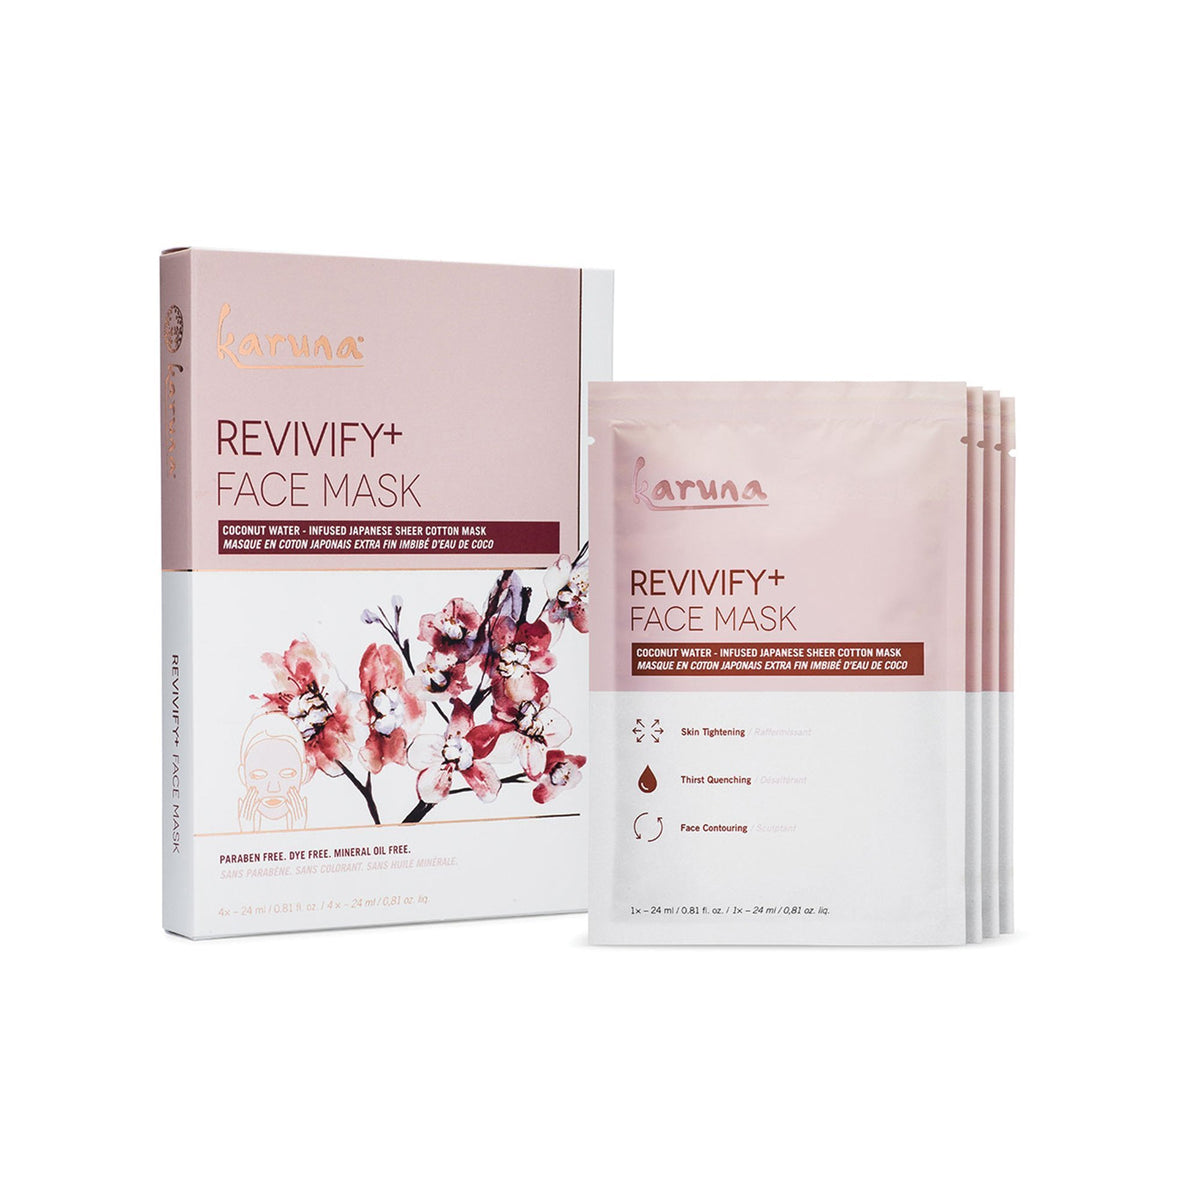 Exfoliants, Peels, Masks & Scr Karuna Revivify Face Mask Box – 4 Count